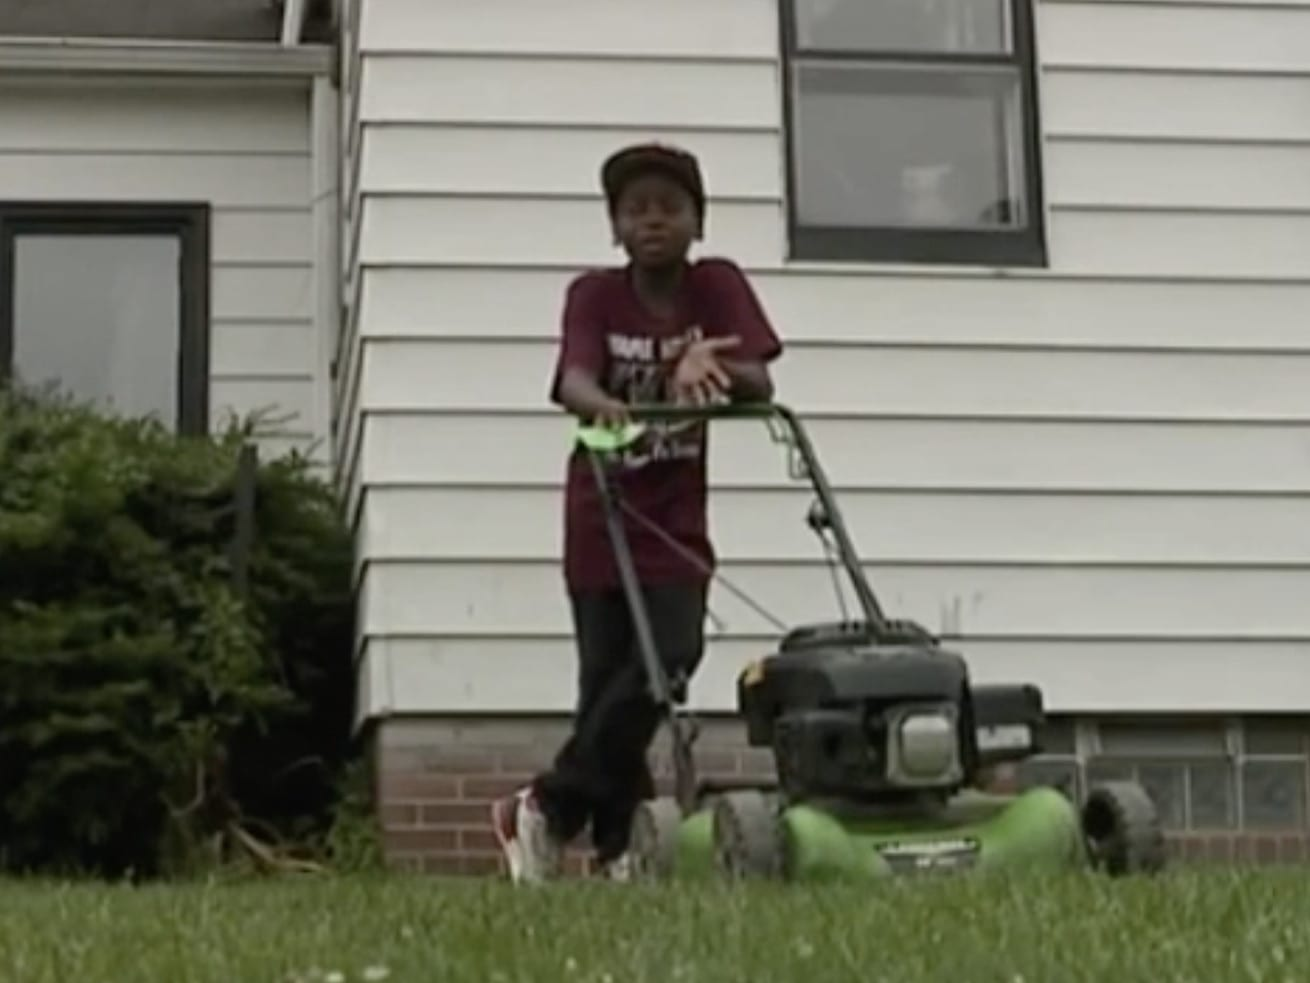 Screen_Shot_2018_07_02_at_3.59.21_PM.0 A black 12-year-old was mowing a lawn. So someone called the police.